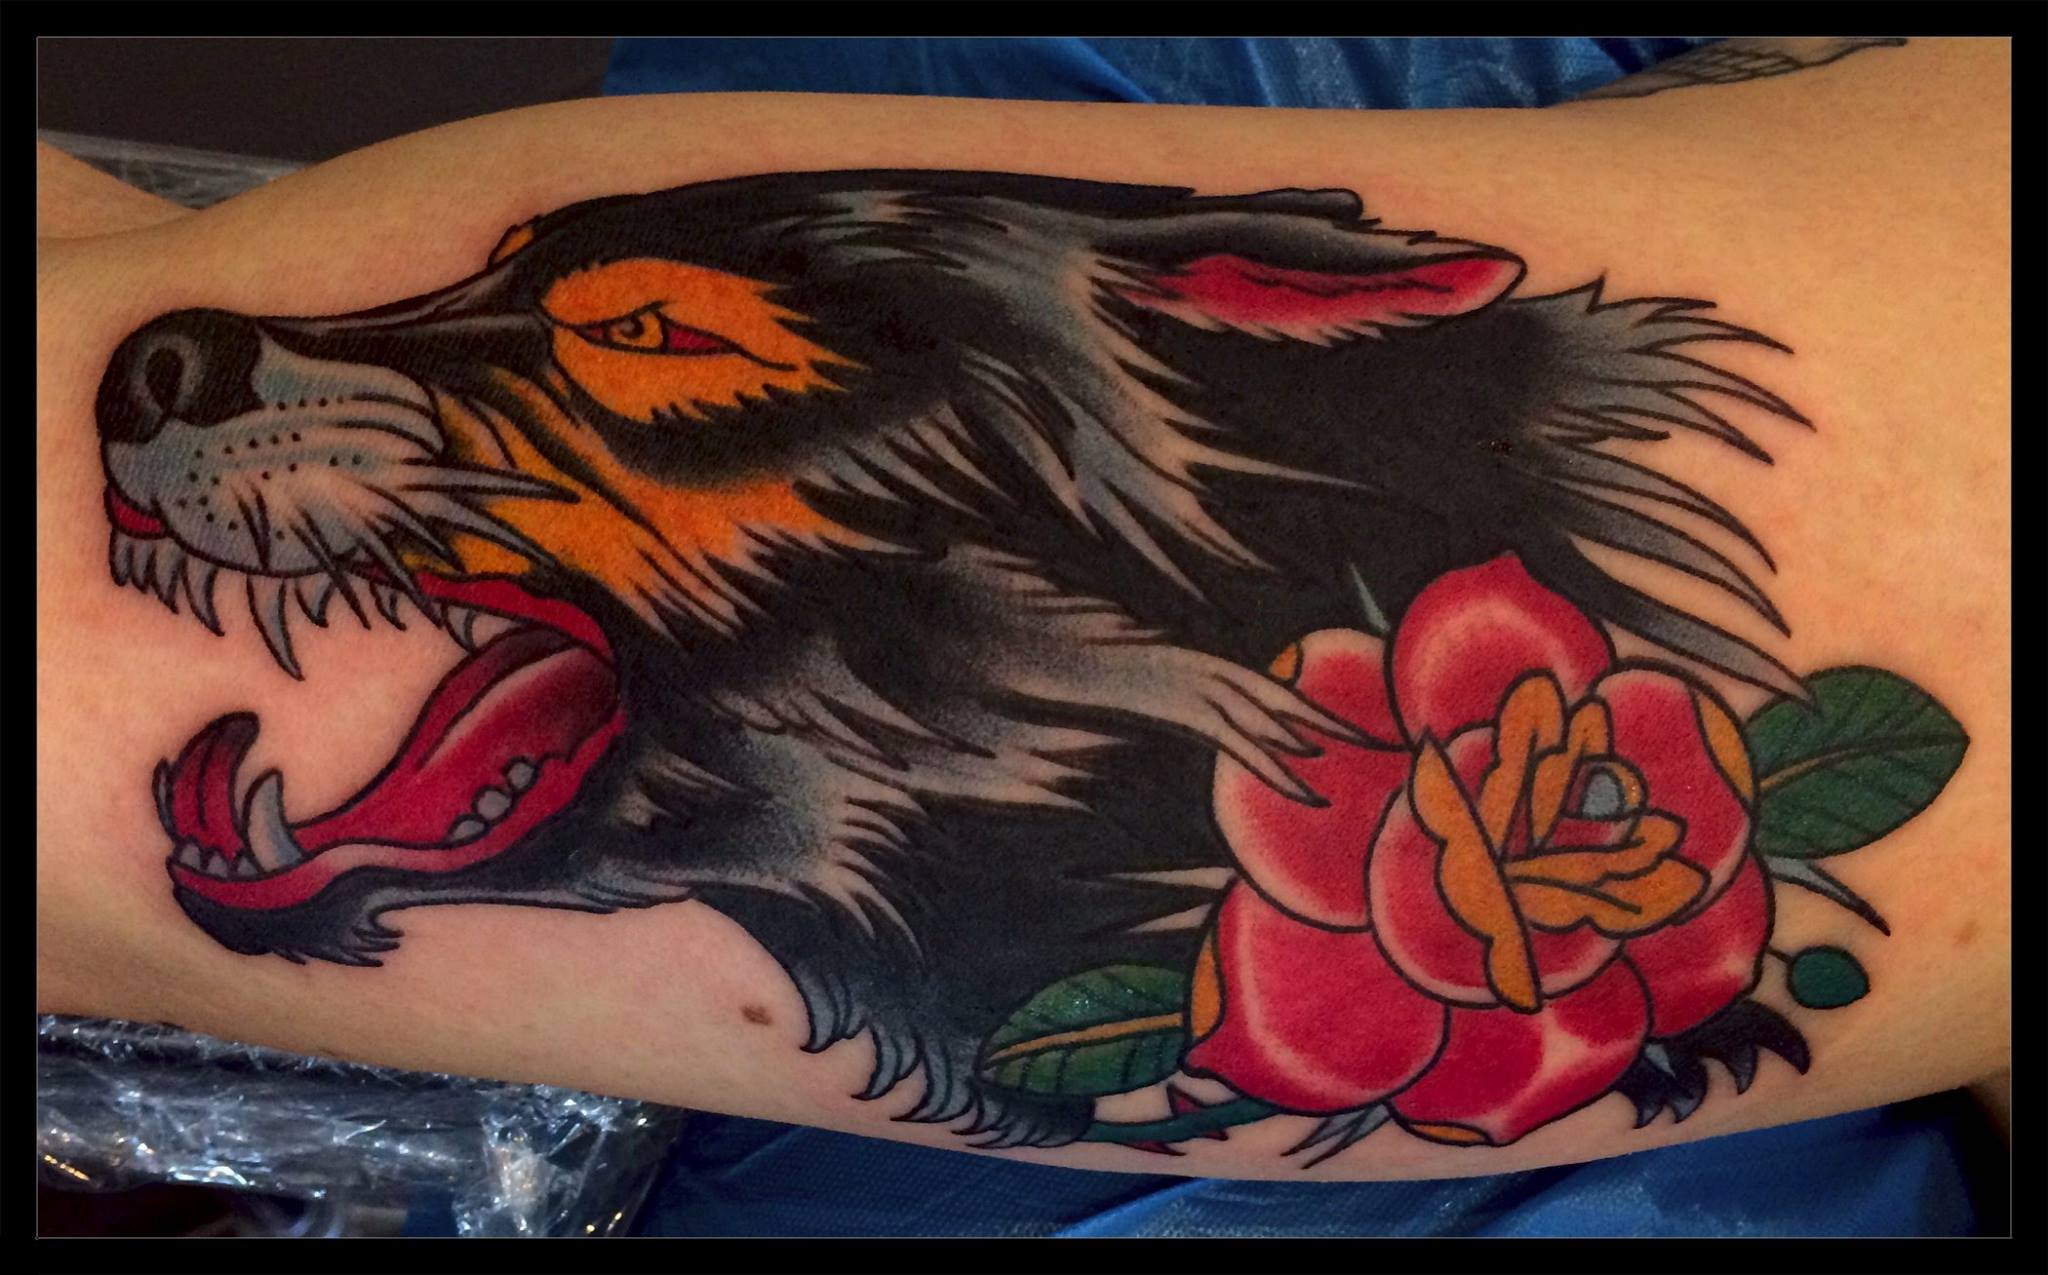 Out come the wolves....done by Ron Raida Übersetzung anzeigen